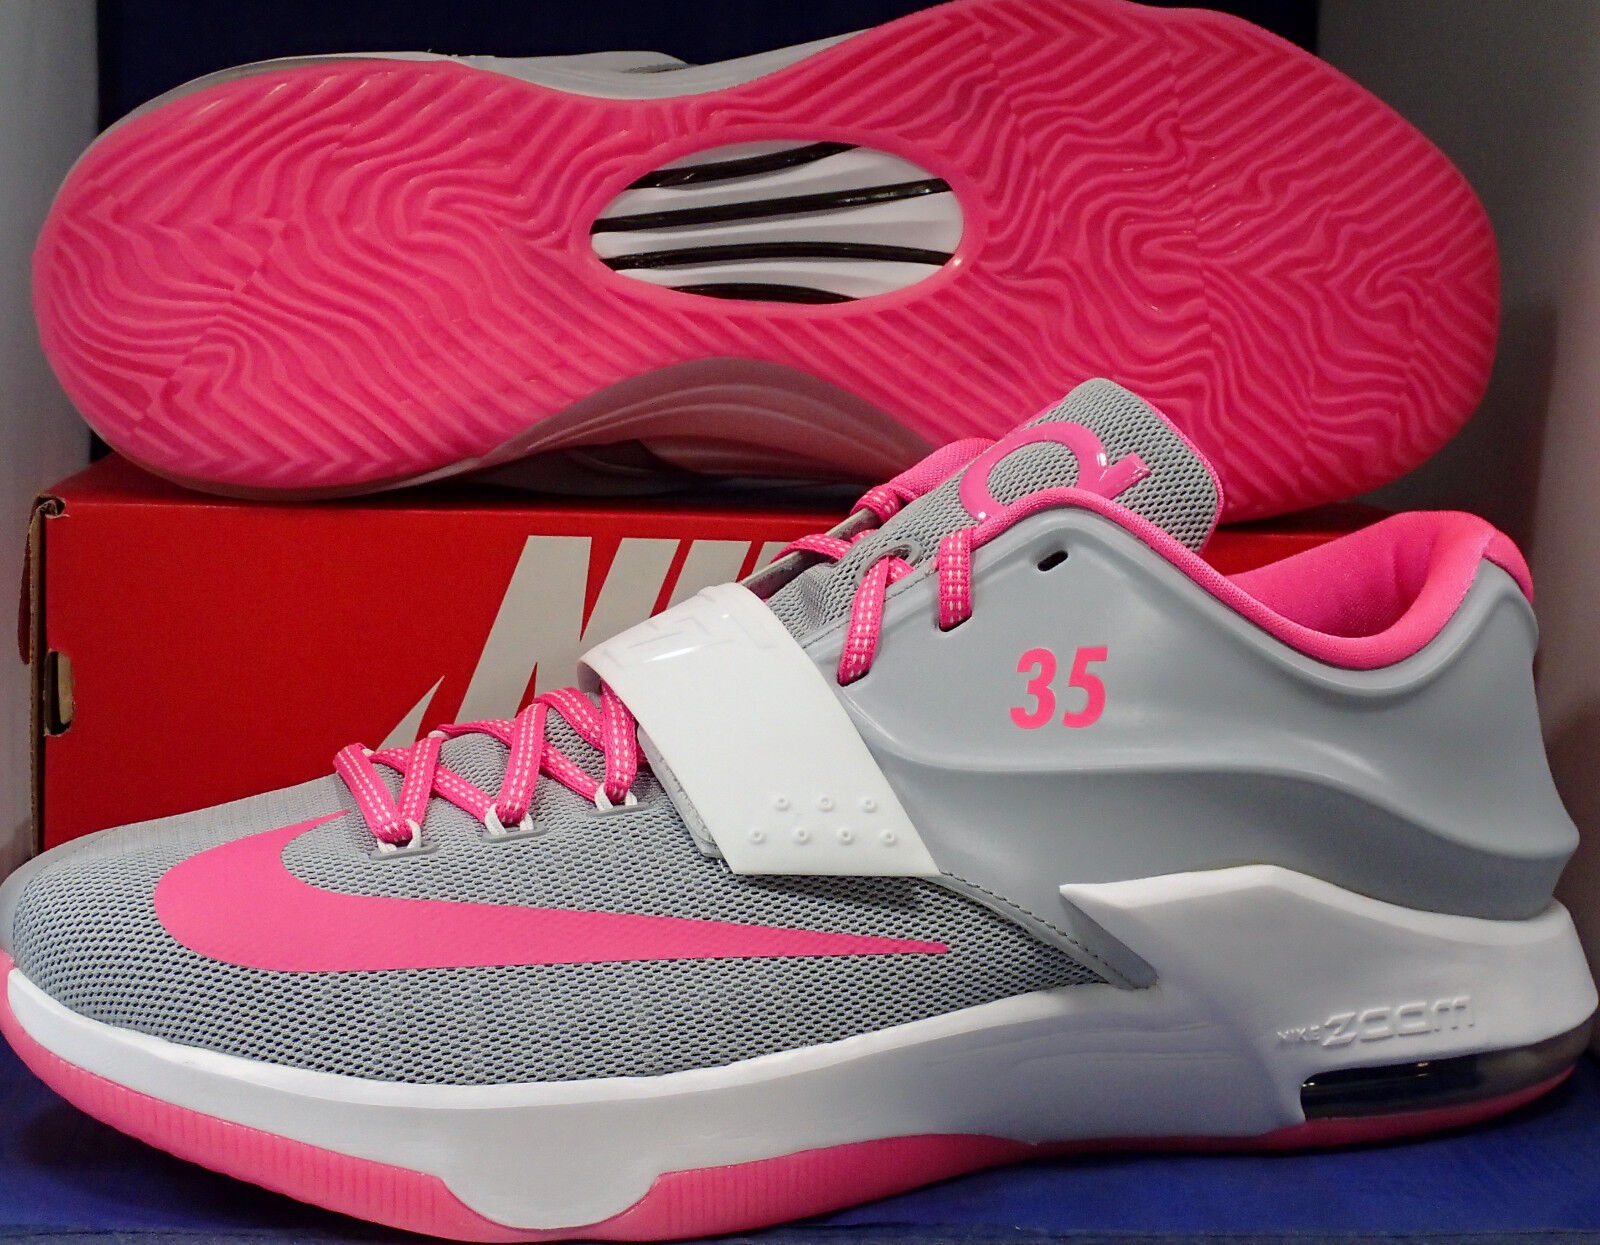 Nike KD VII 7 iD Grey White Pink Aunt Pearl Kevin Durant SZ 15 ( 704380-981 )